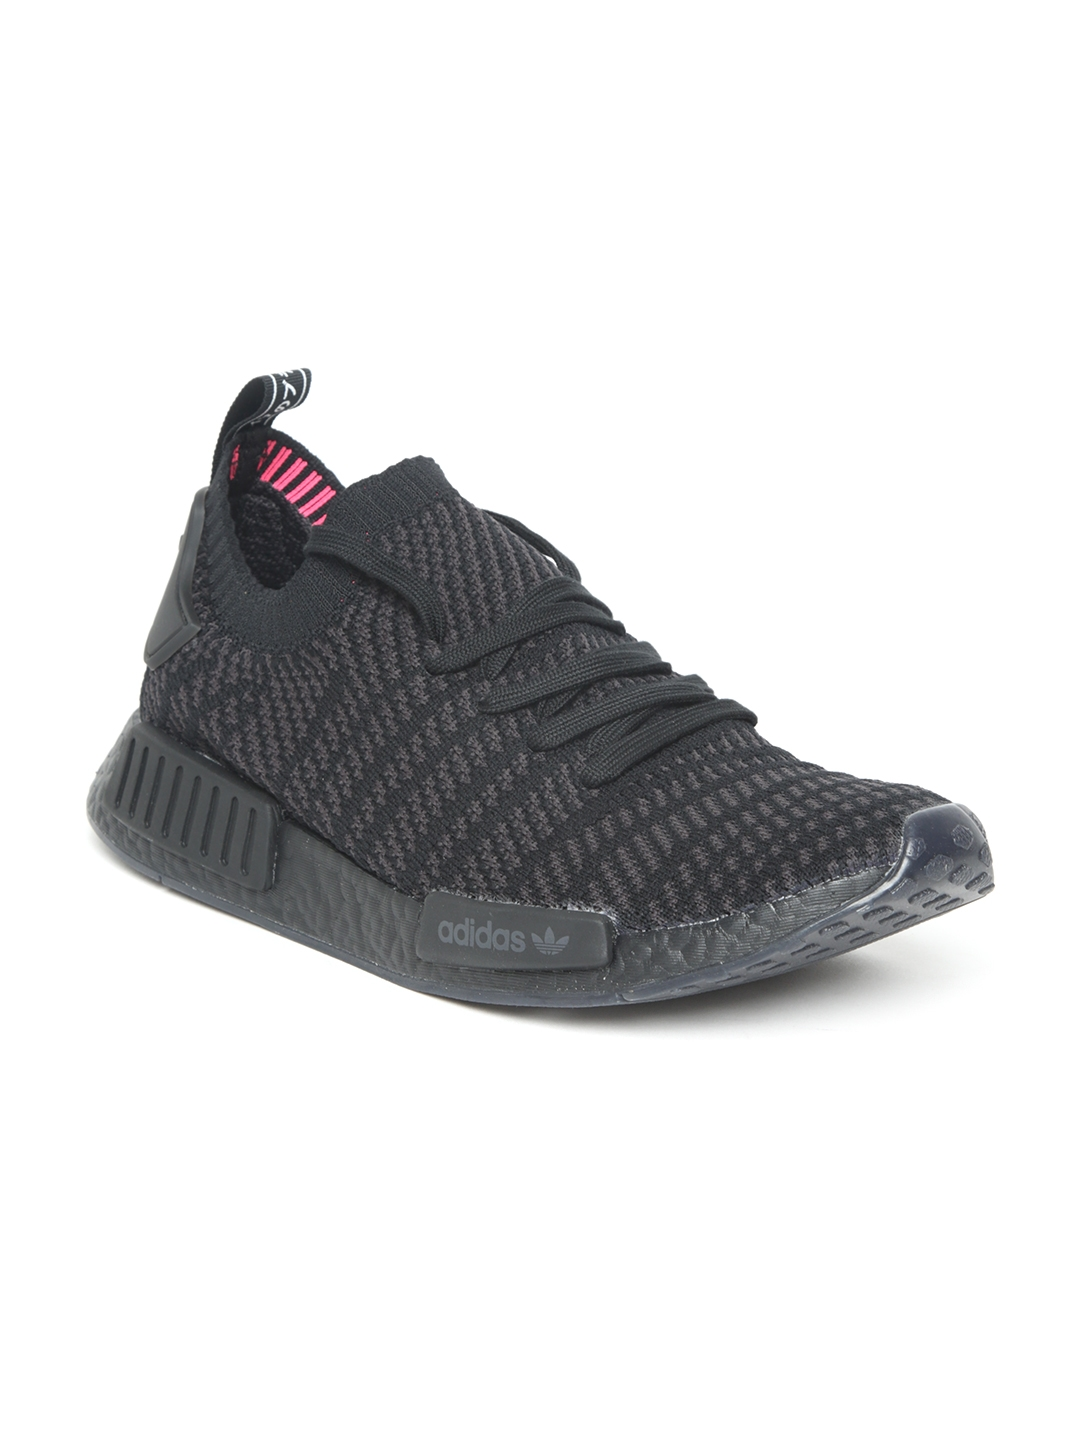 separation shoes 32753 41e2f ADIDAS Originals Men Black  Charcoal Grey NMDR1 STLT PRIMEKNIT Striped  Sneakers